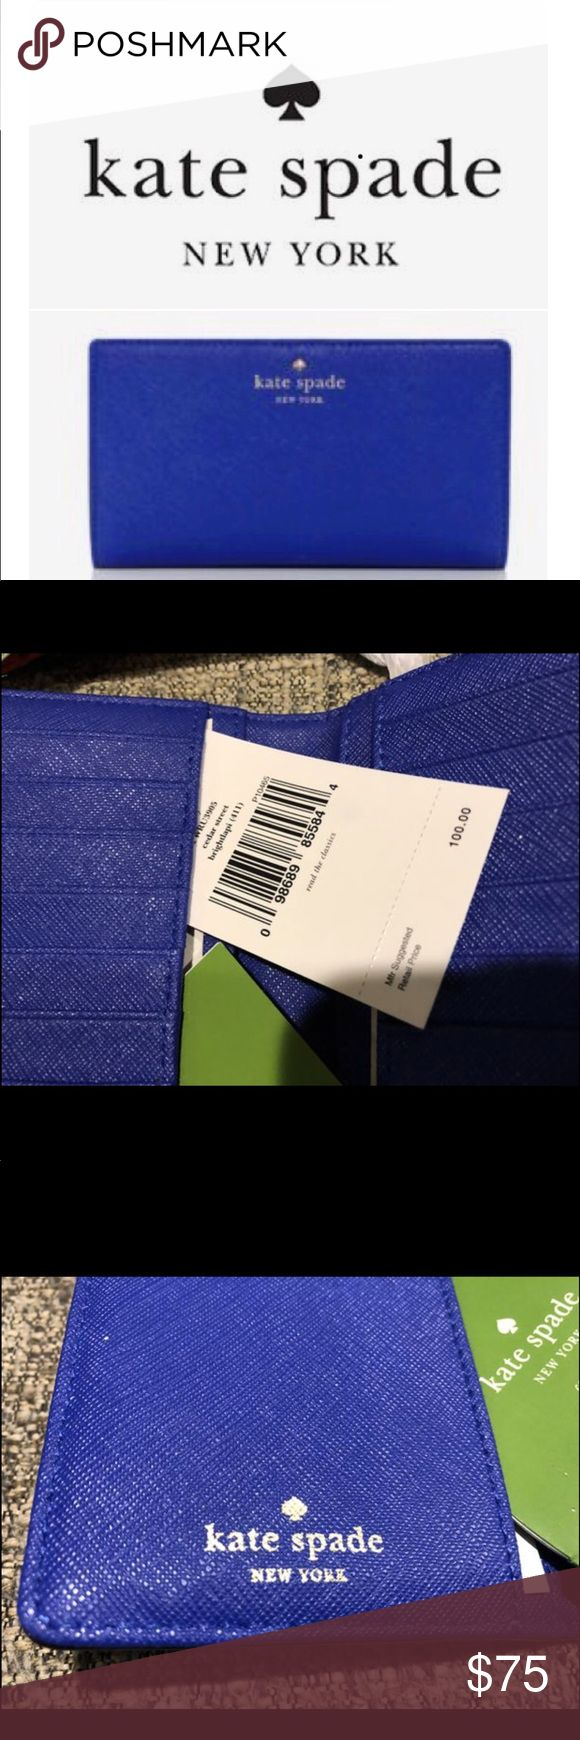 Kate Spade Cedar Street Stacy Wallet :) NWT Never been used!  About 3x6 inches.  The Color is a royal blue!  Plenty of space for cash and cards.  Has ID SLOT  And the wallet snaps shut!  This super cute wallet is a great deal!! :) kate spade Bags Wallets